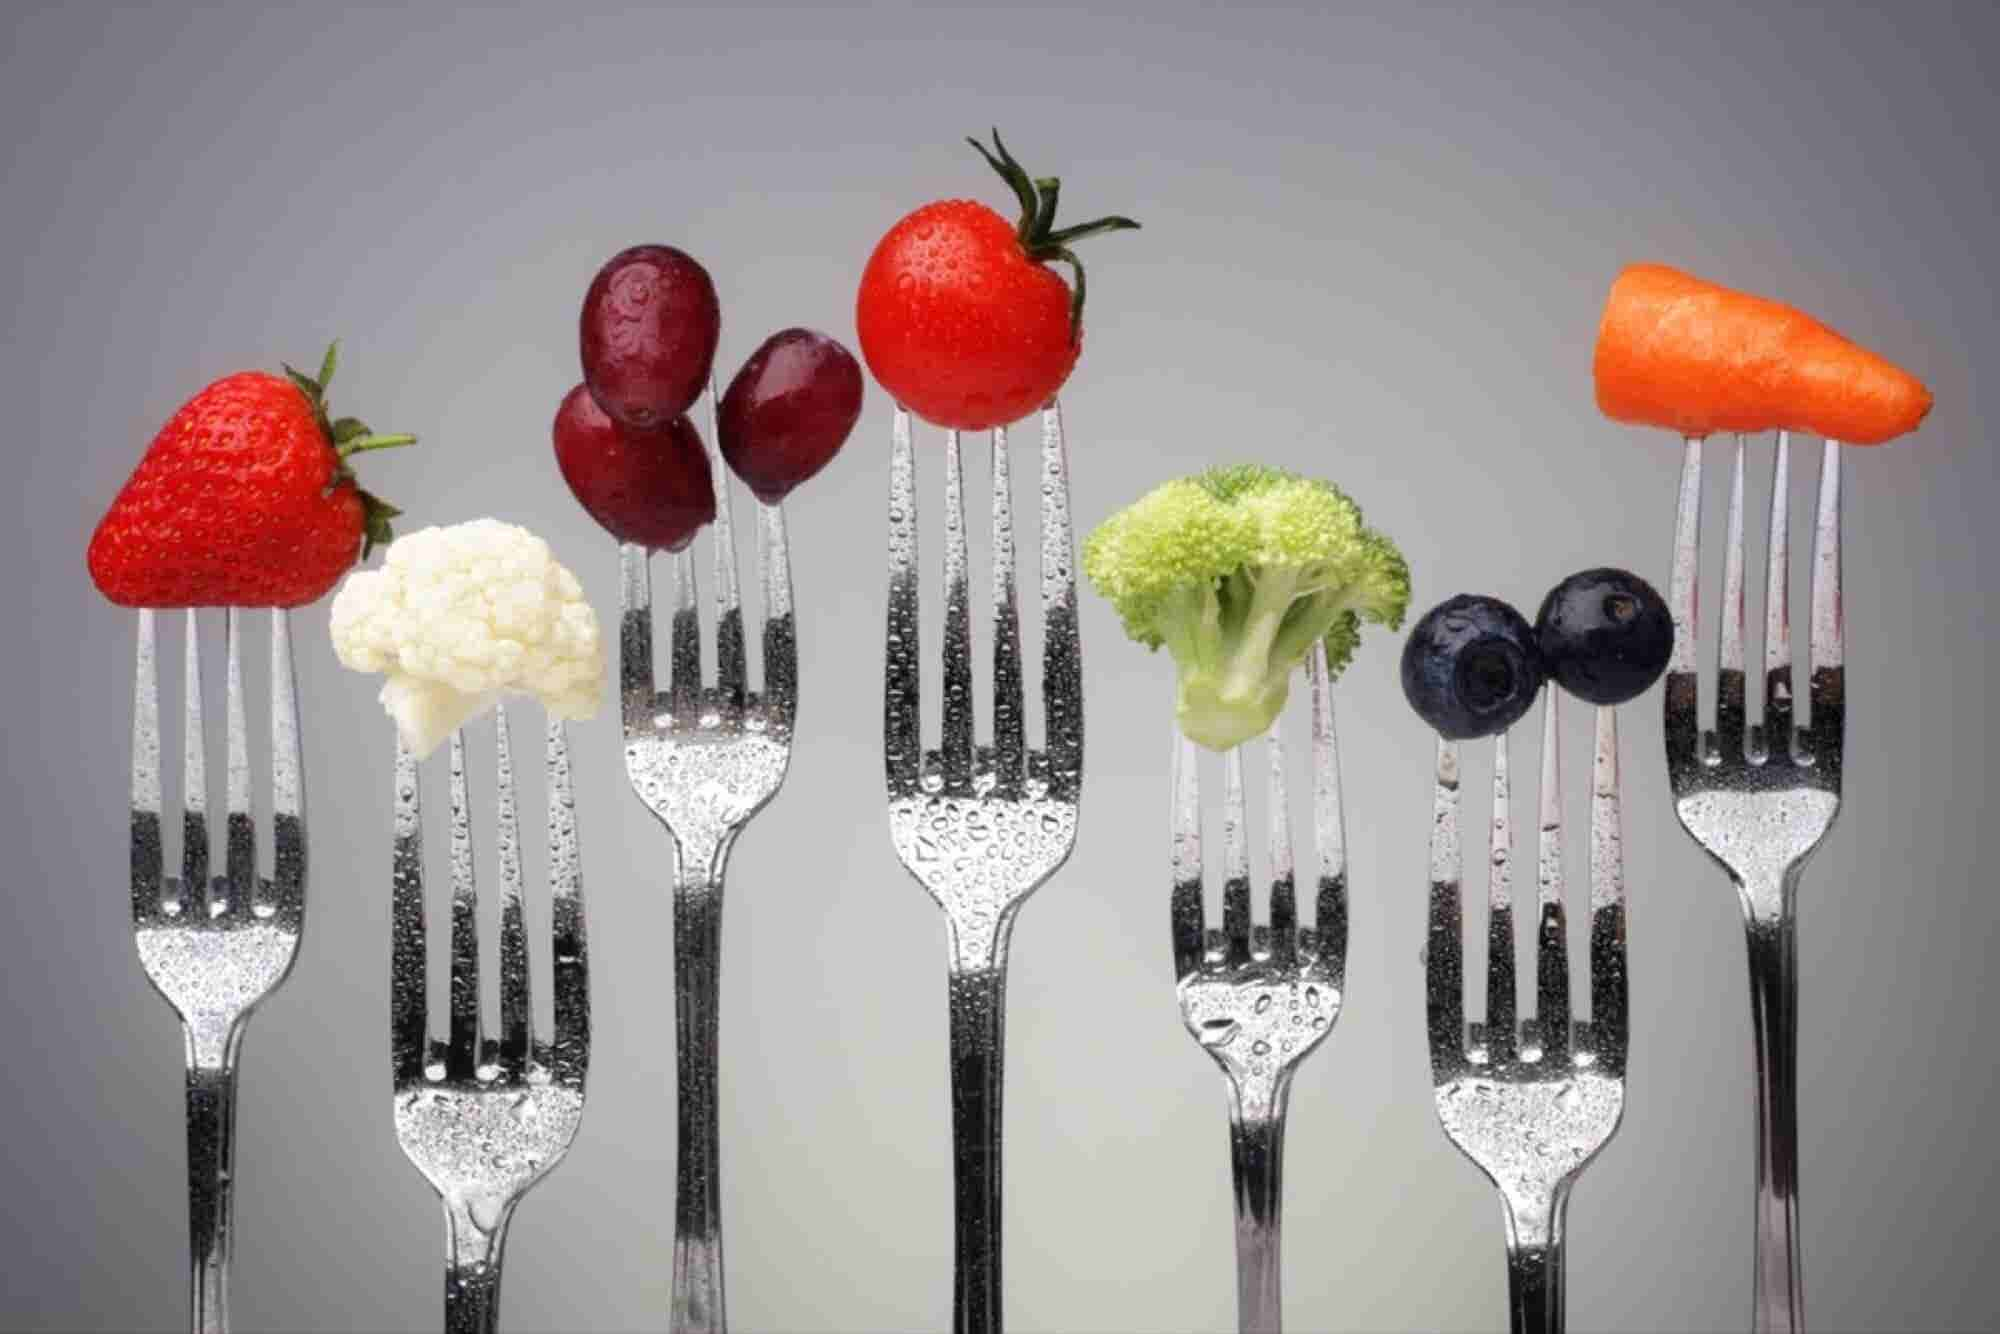 How the Organic Food Industry is Witnessing a Natural Growth